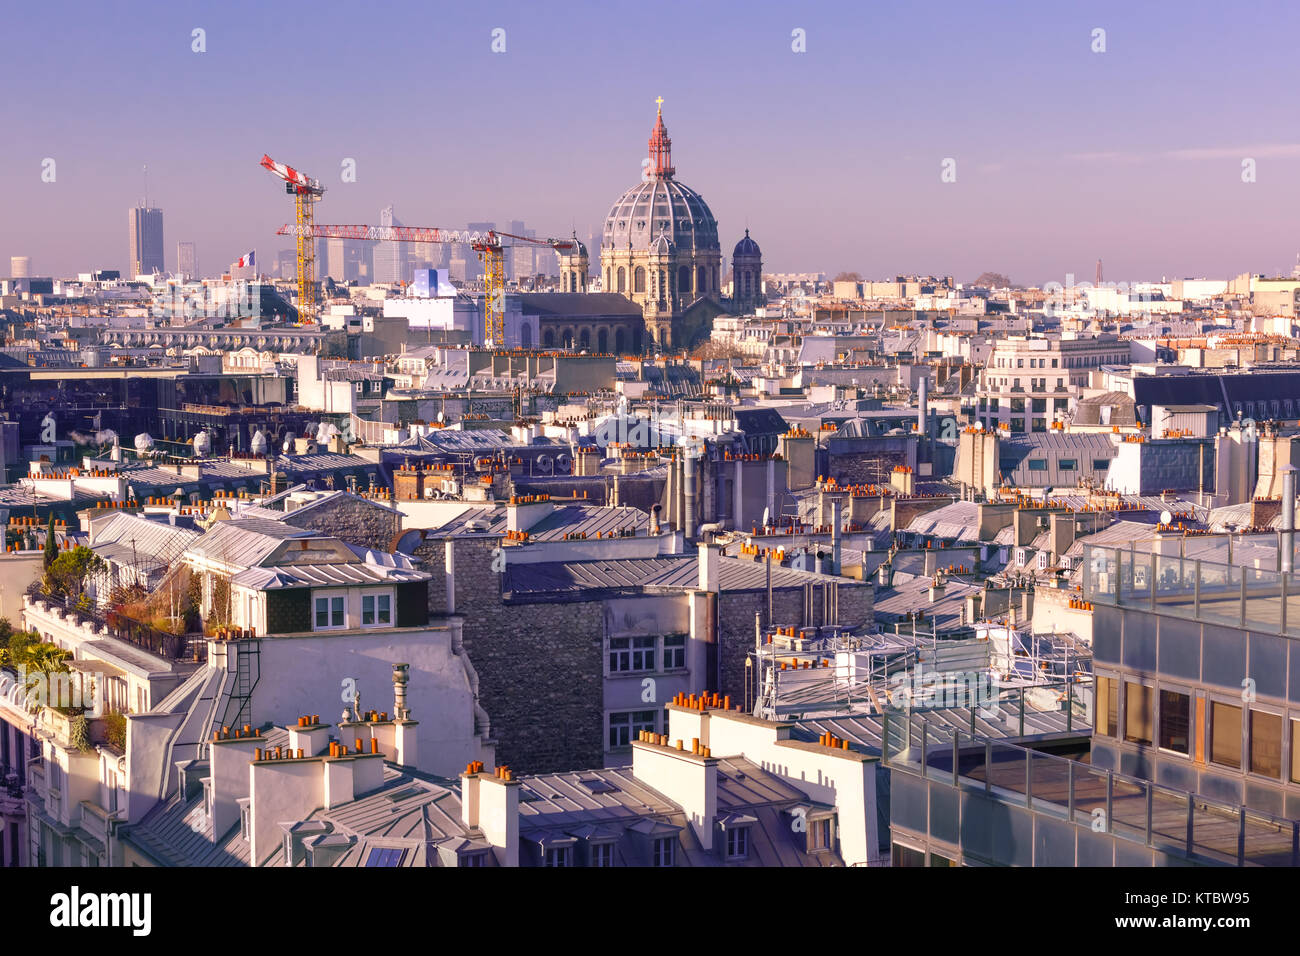 City rooftops Paris, France - Stock Image